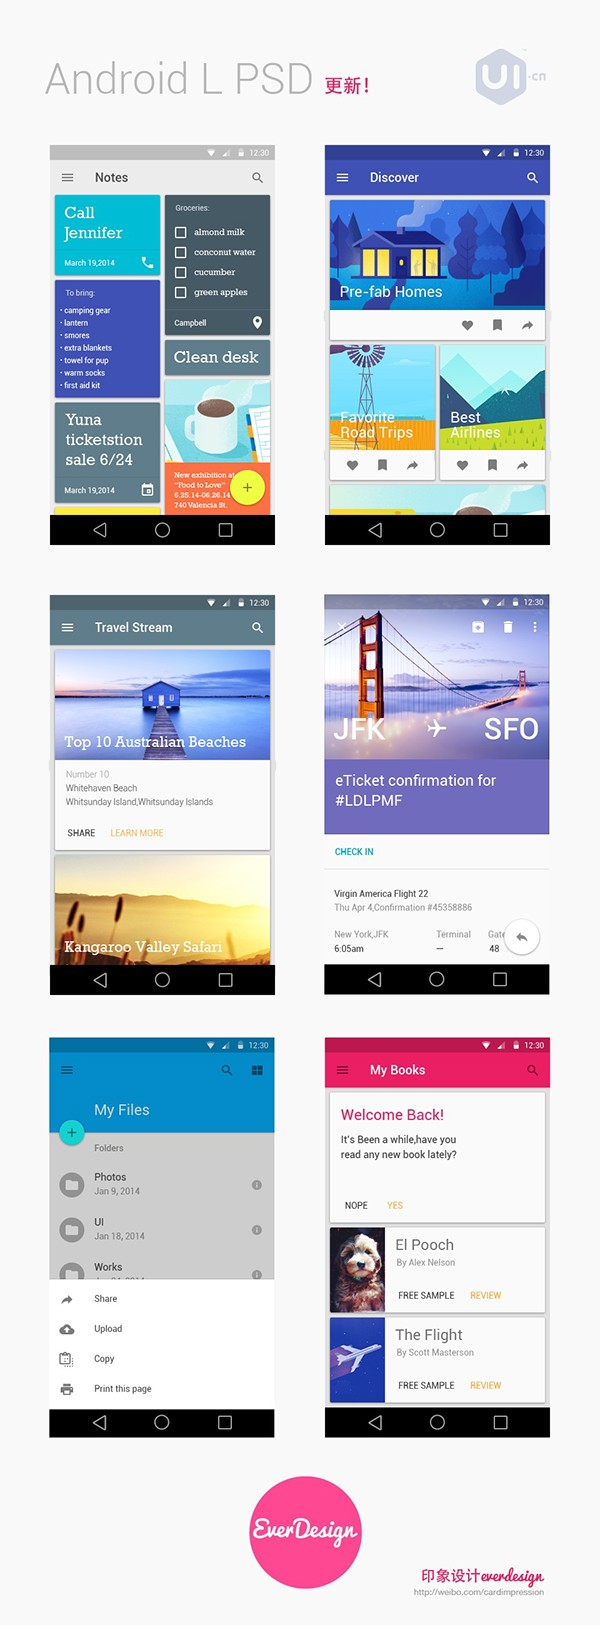 Android Ui Design: Android Ui Design Gallery